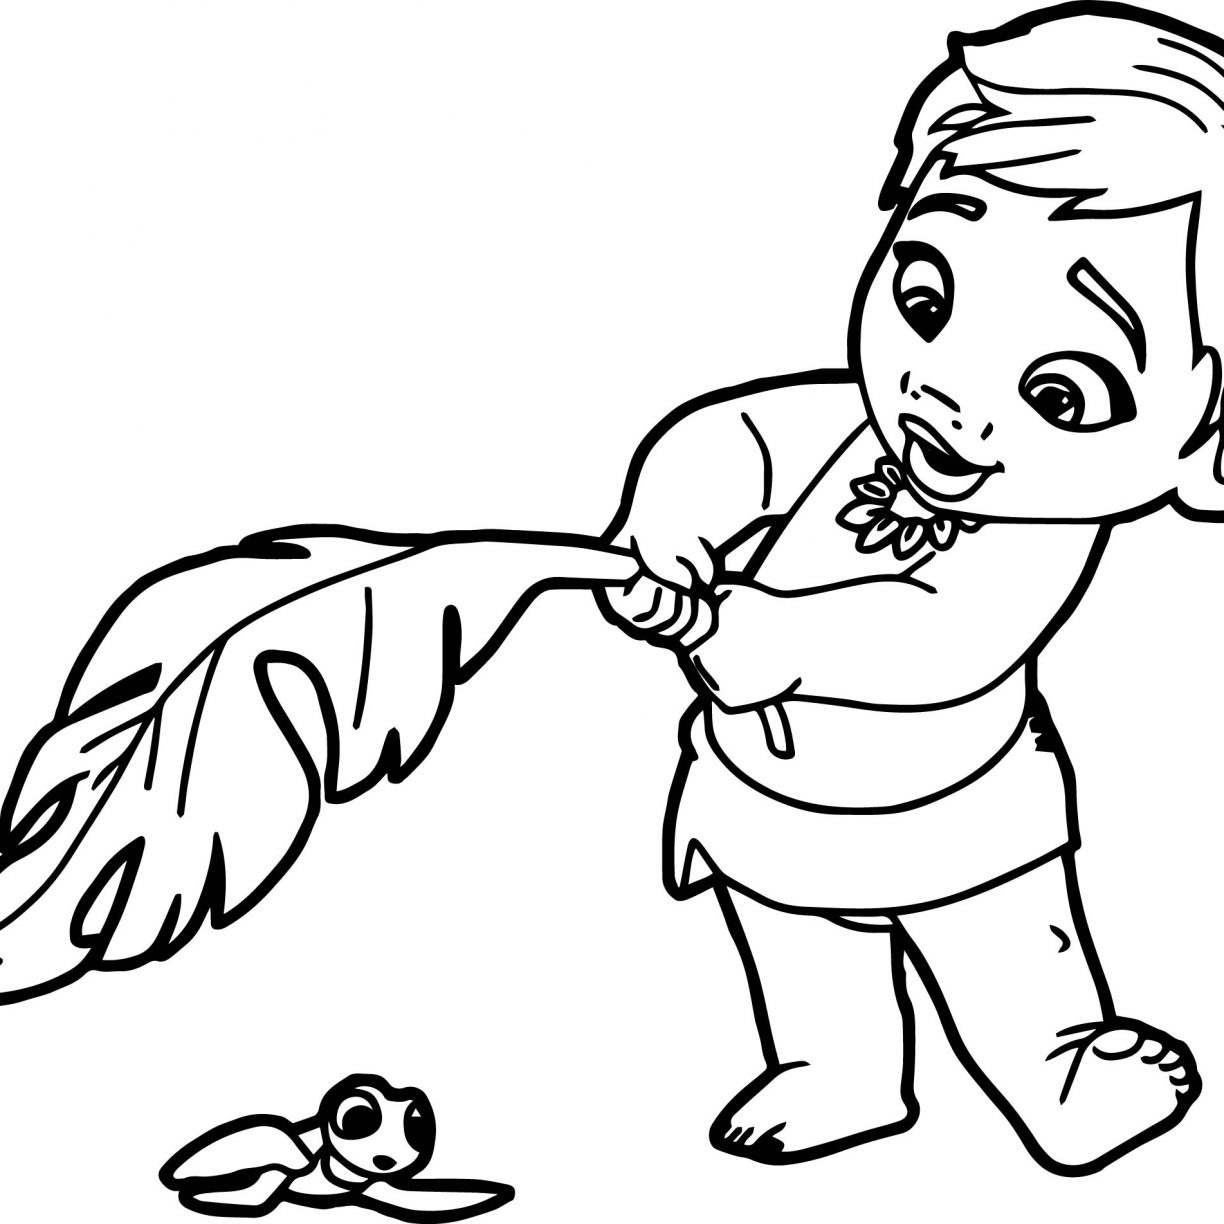 Moana Coloring Pages Free At Getdrawings Com Free For